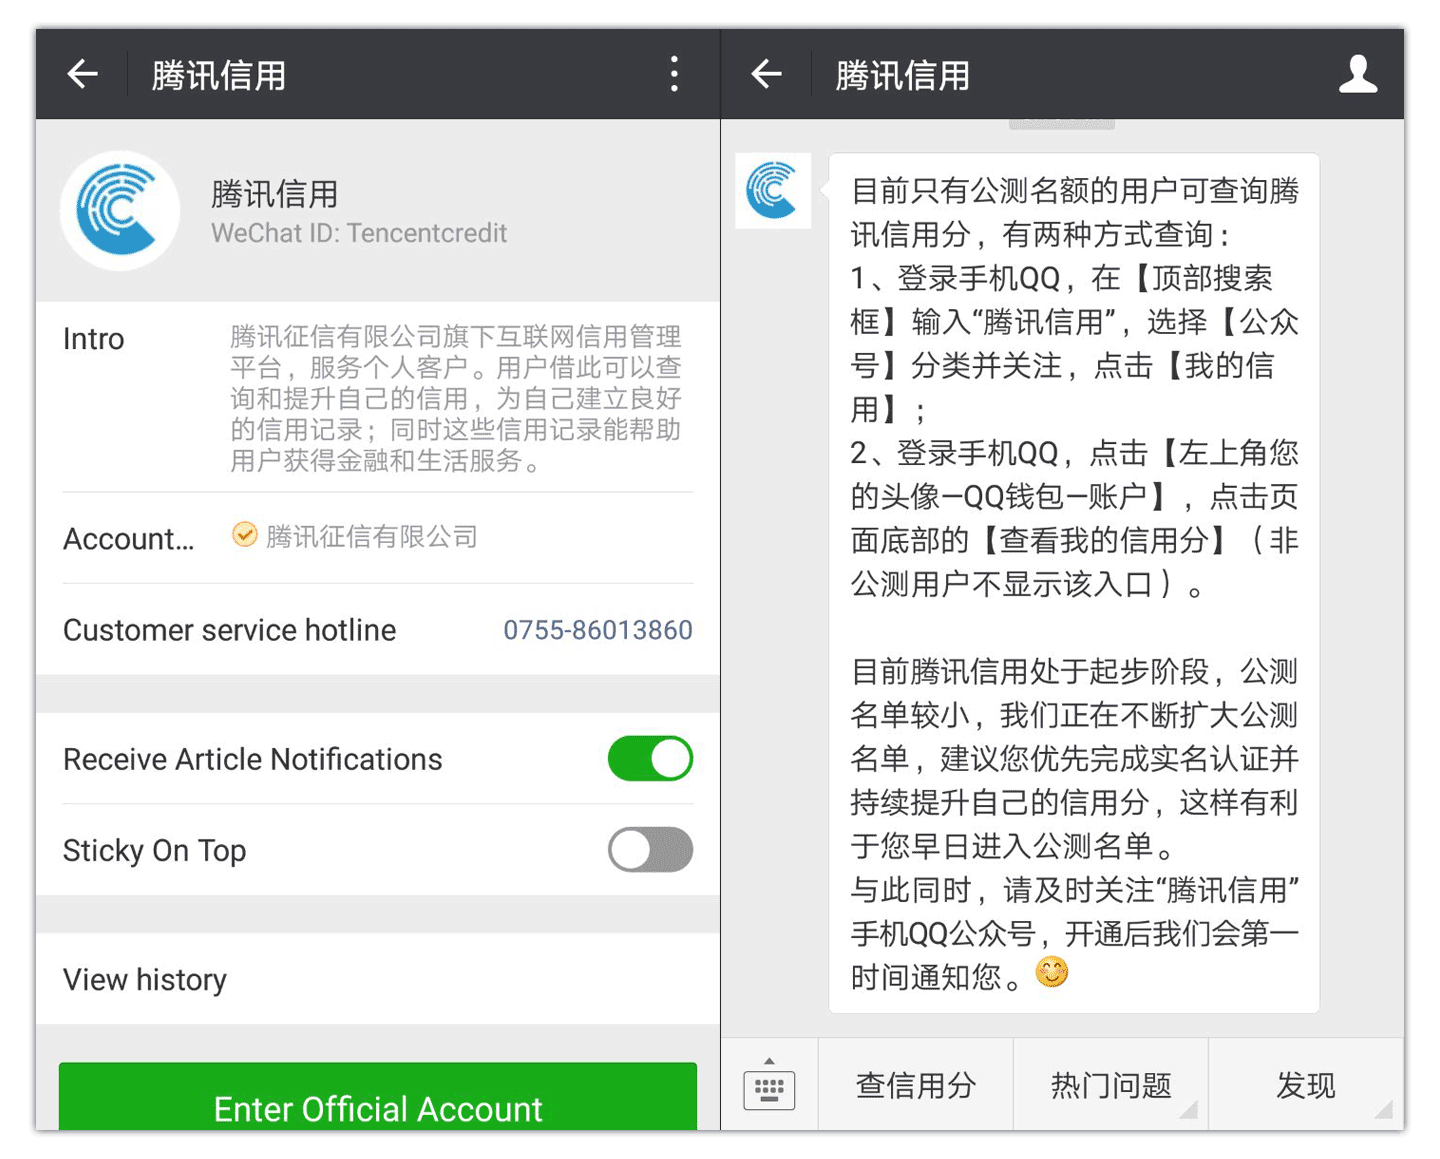 Tencent Credit Score Official Account